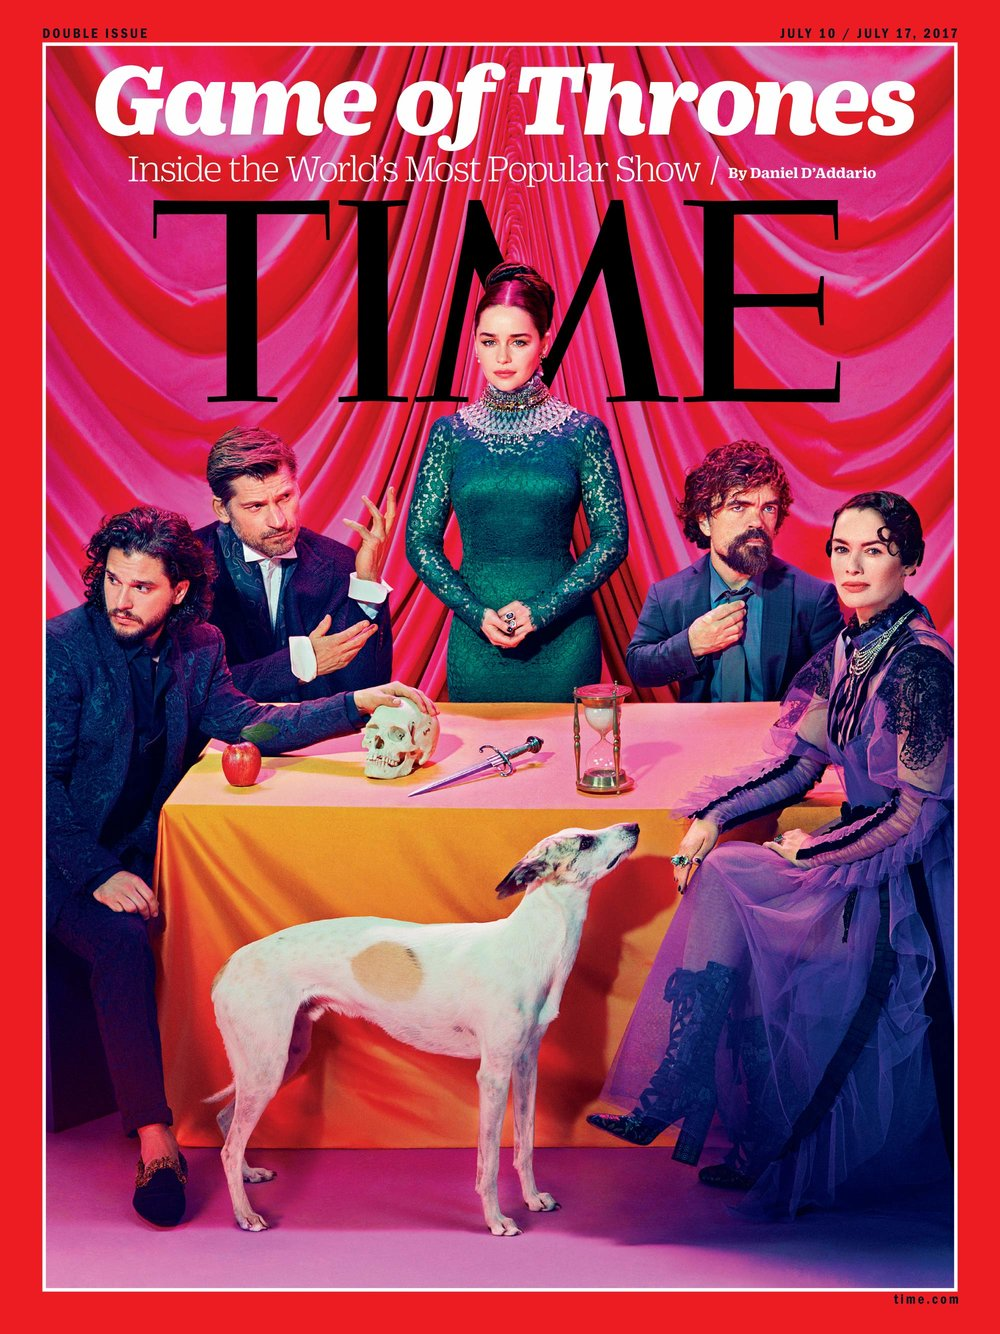 Photo composite by Miles Aldridge for TIME   See the behind the scenes of the photo shoot